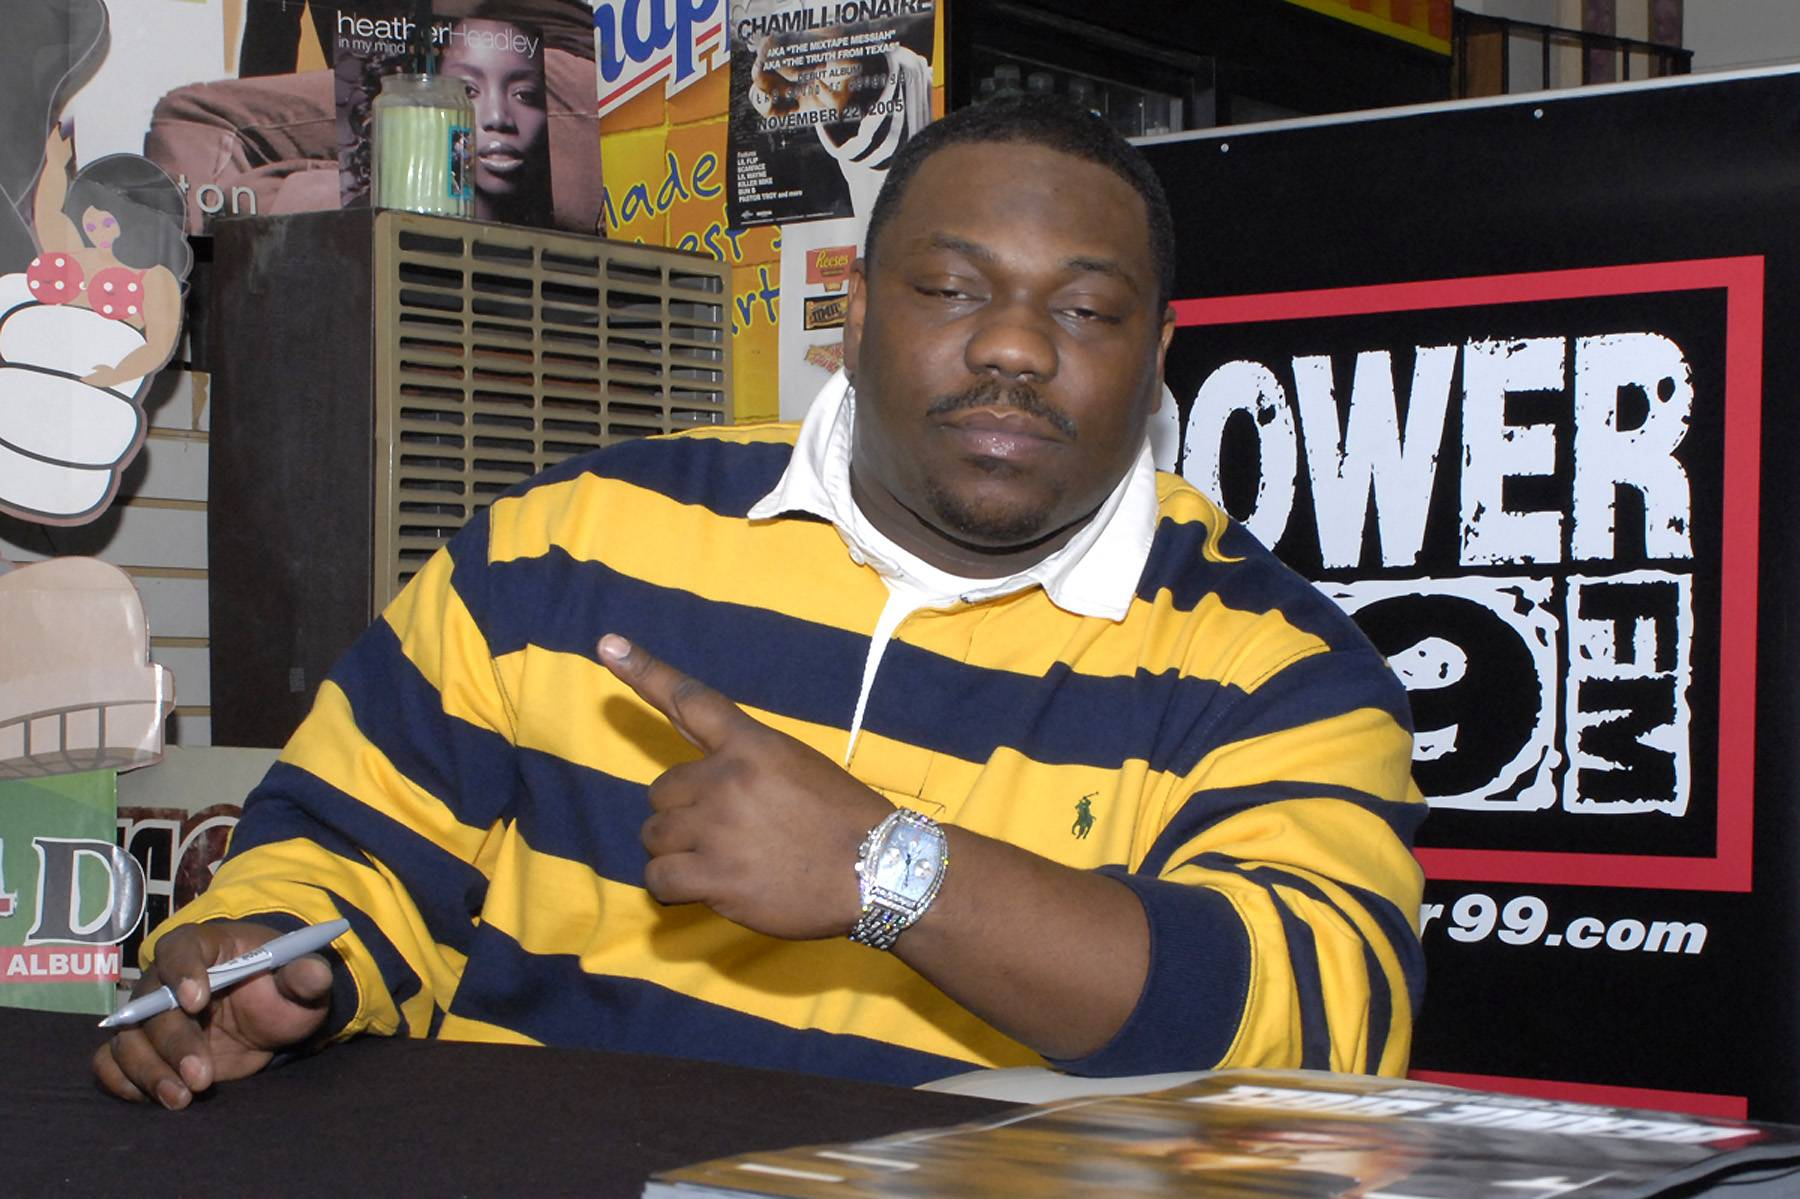 Beanie Sigel Out of Hospital - Beanie Sigel was released from the hospital after spending a month in care, according to reports. The rapper was shot in the stomach outside of a New Jersey home last month following an altercation. He was rushed to the hospital where he had surgery. Get well soon!(Photo: Gilbert Carrasquillo/Splash News)